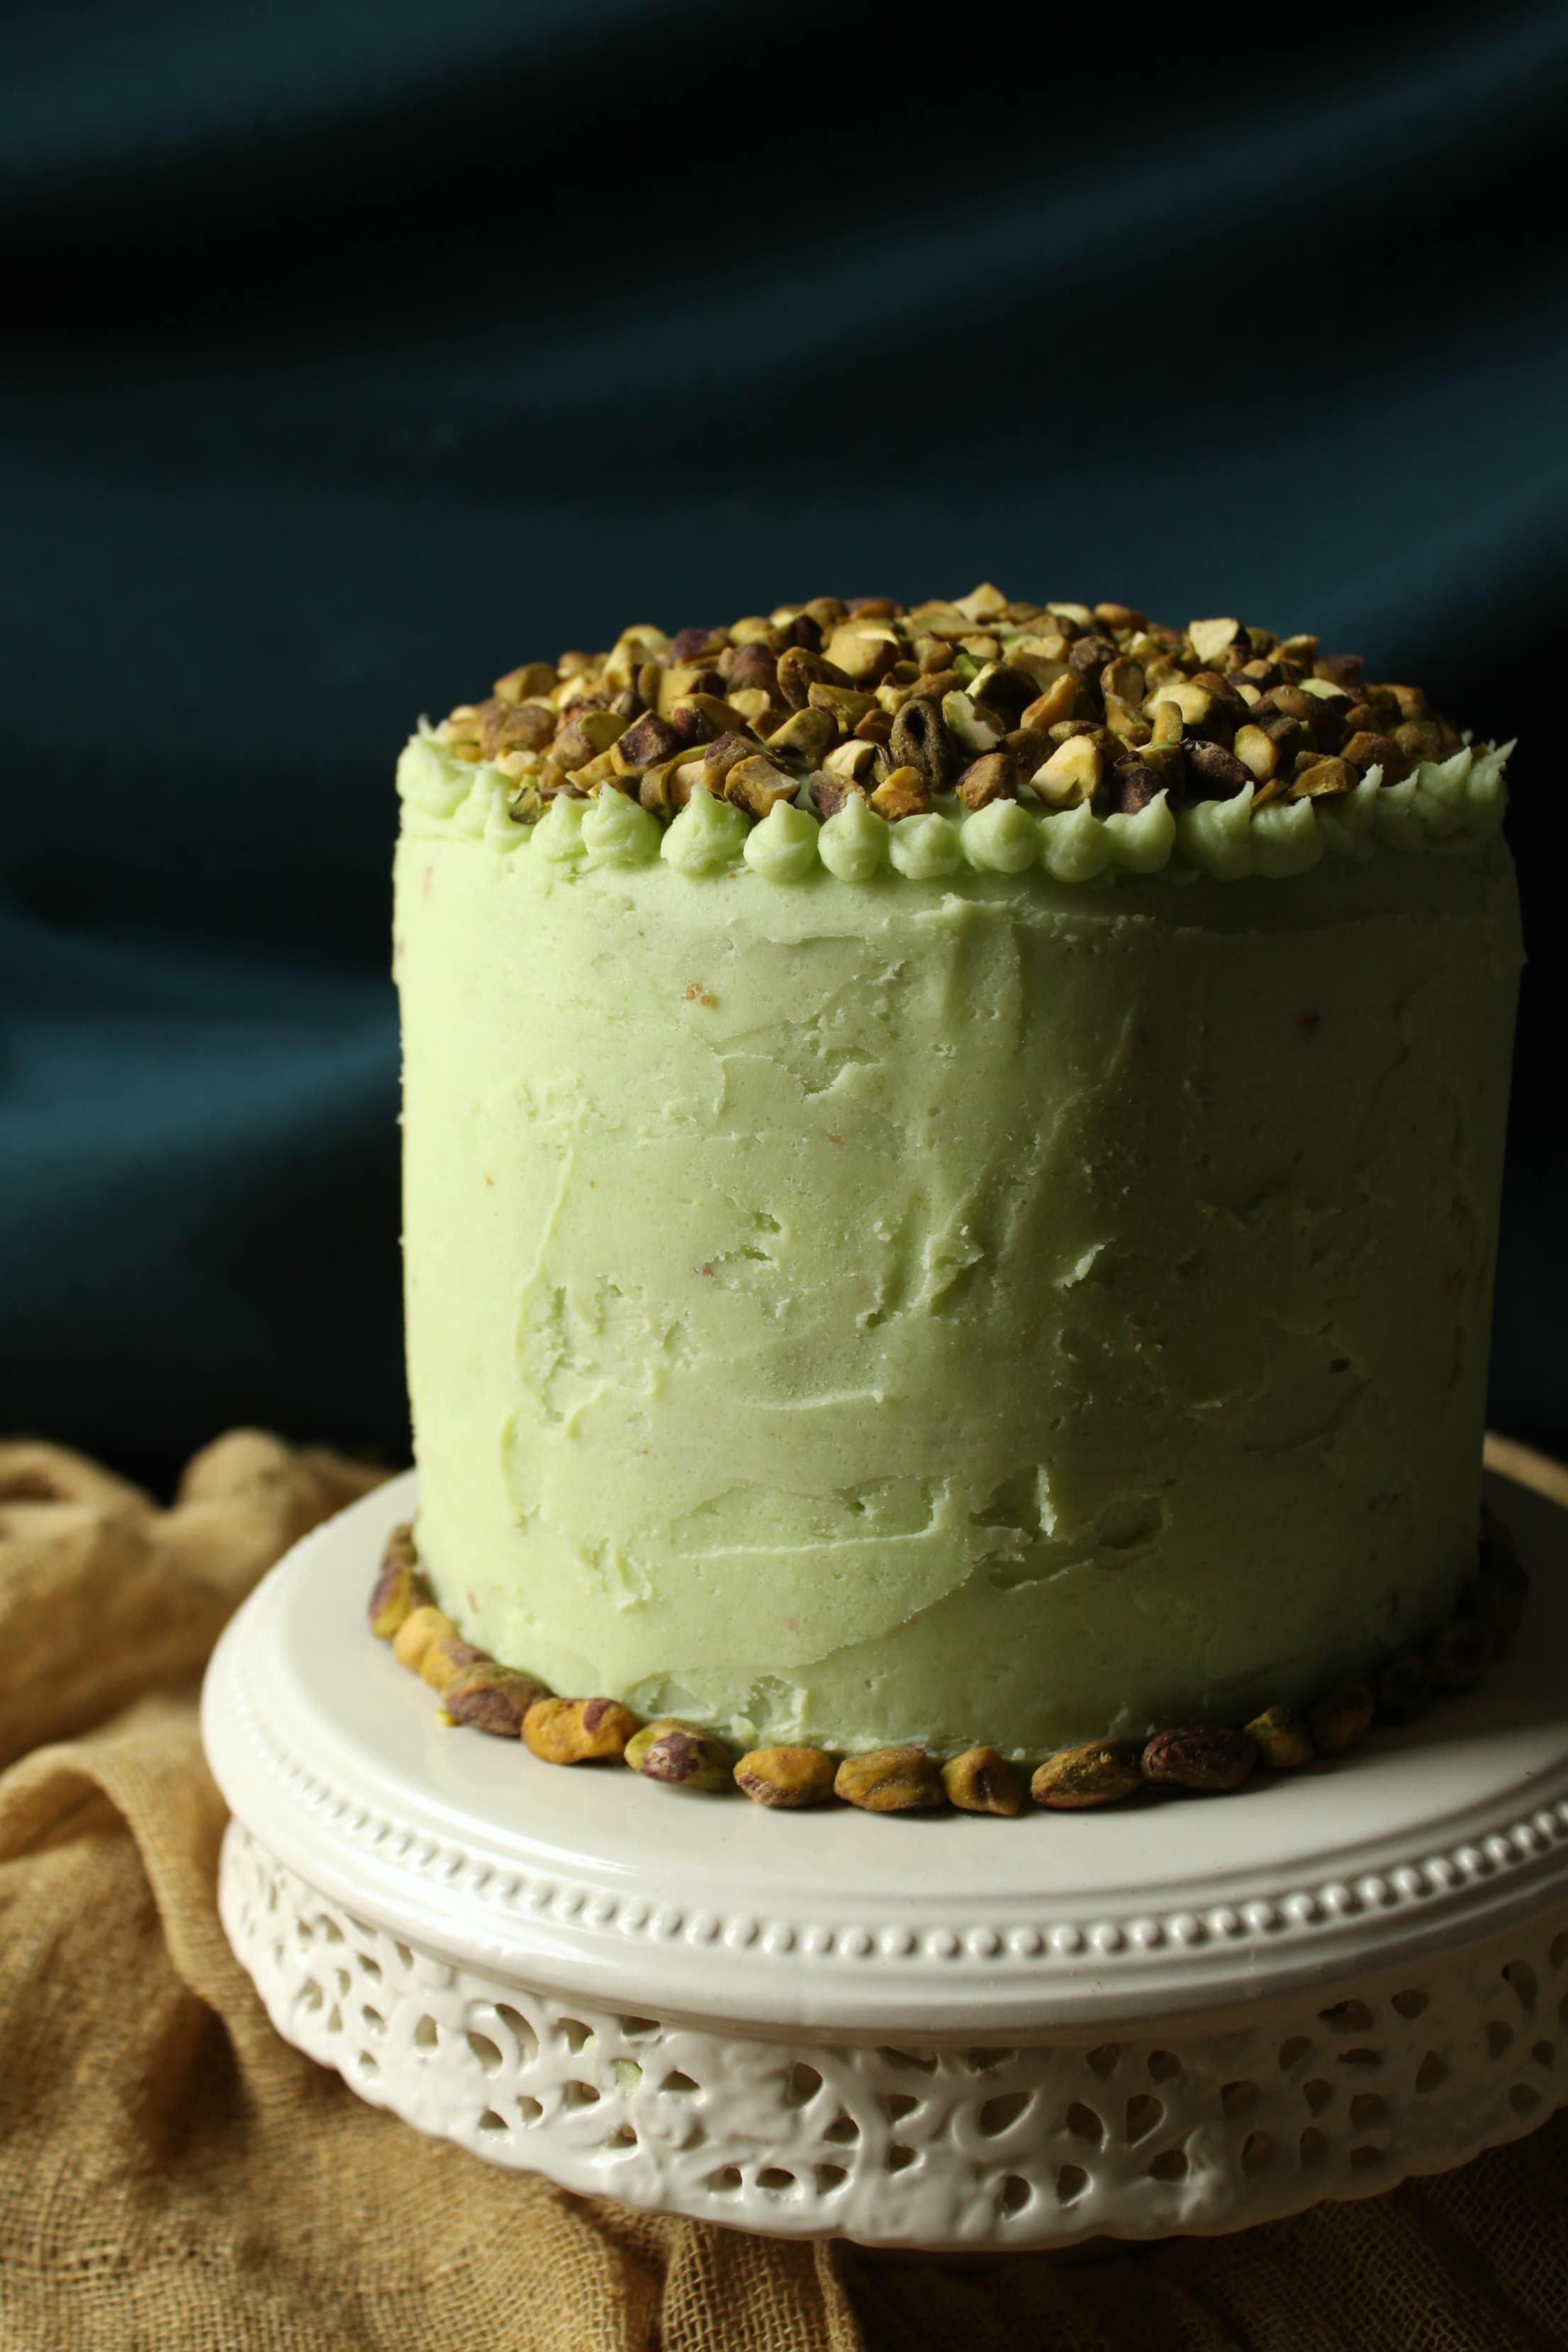 This Chai Layer Cake with Pistachio Buttercream is sweet little cake with a whole lot of attitude. Recipe makes three 6 inch layer cakes and enough pistachio buttercream to sandwich between layers, cover the cake, and all some decorative touches. #birthdaycake #chaicake #layercake #pistachiobutercream